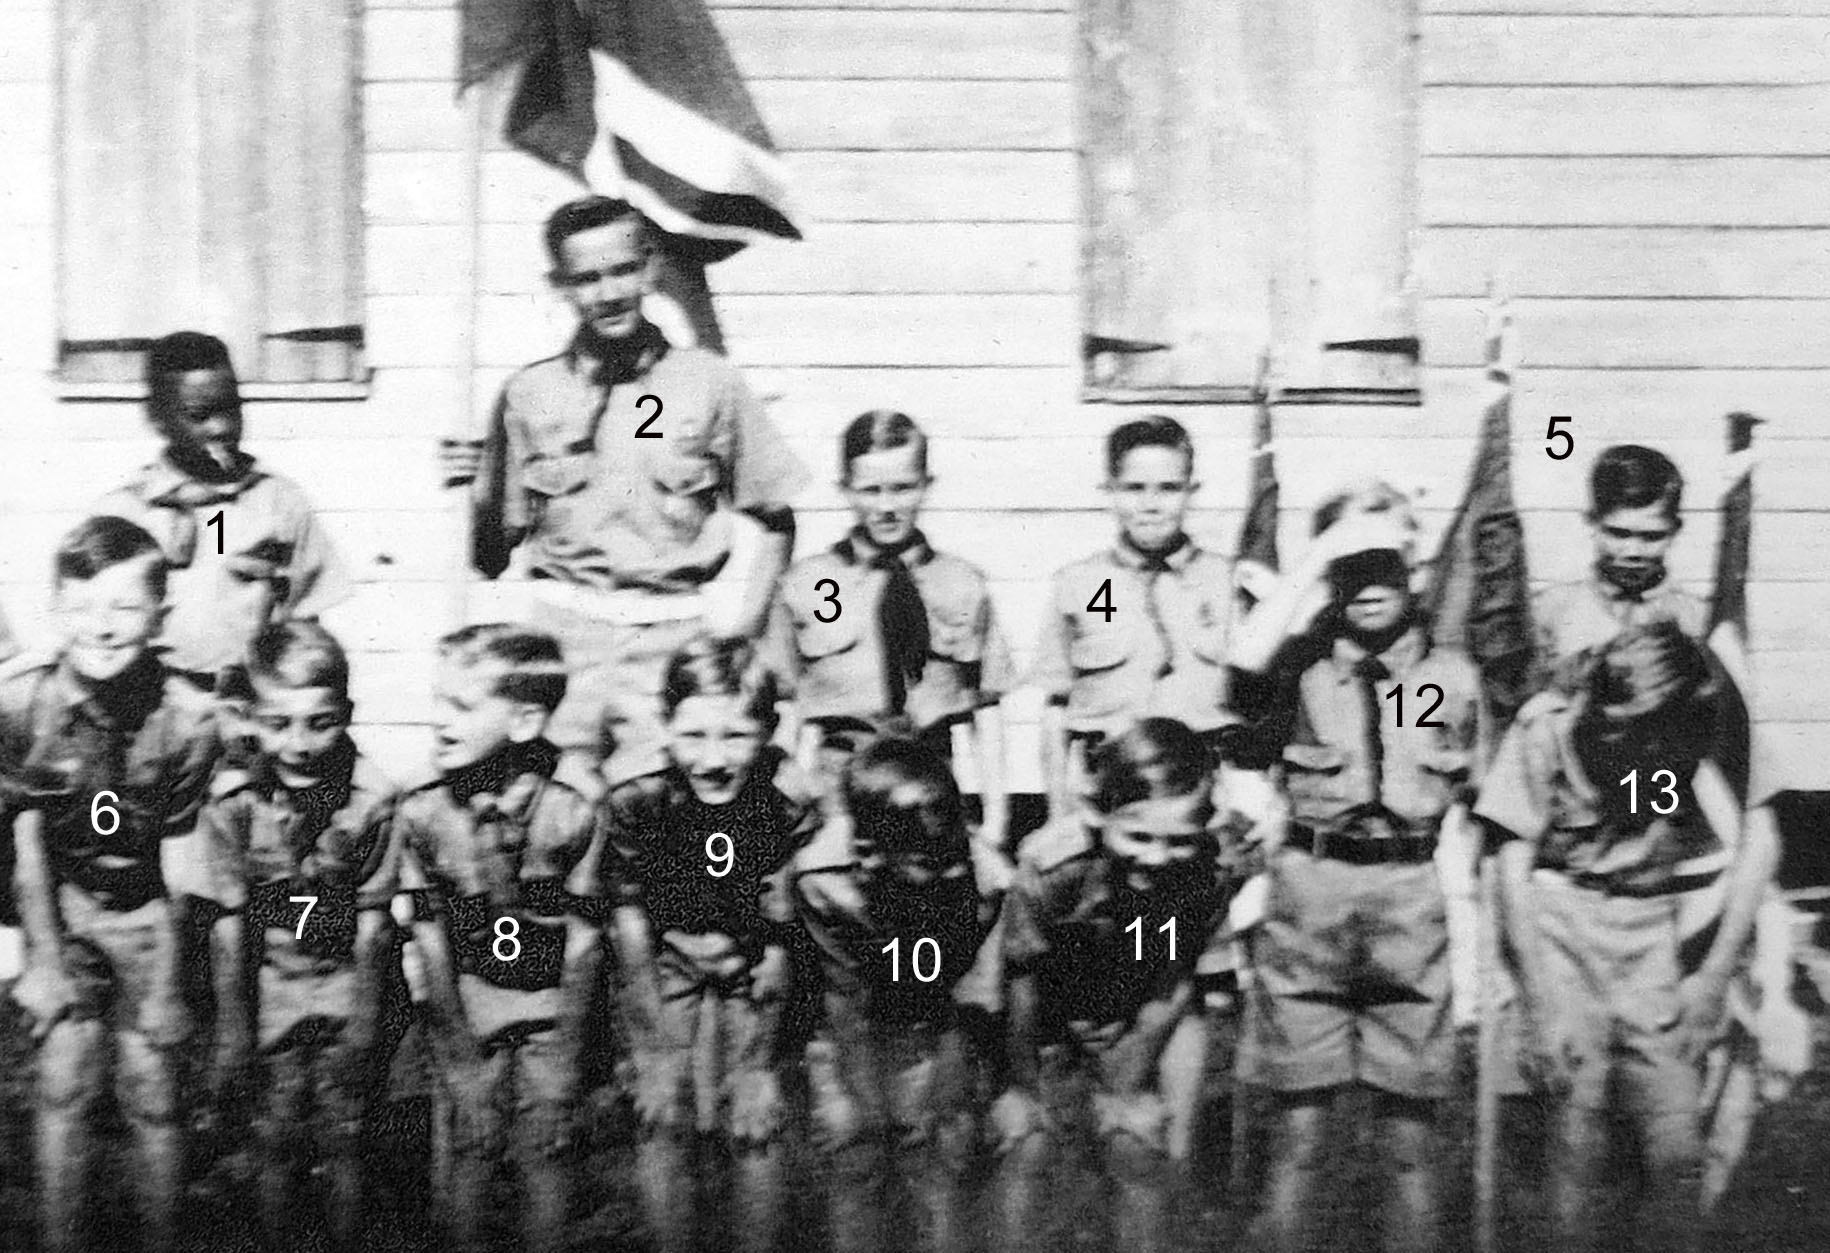 Recognize any of these Green Turtle Cay Boy Scouts?